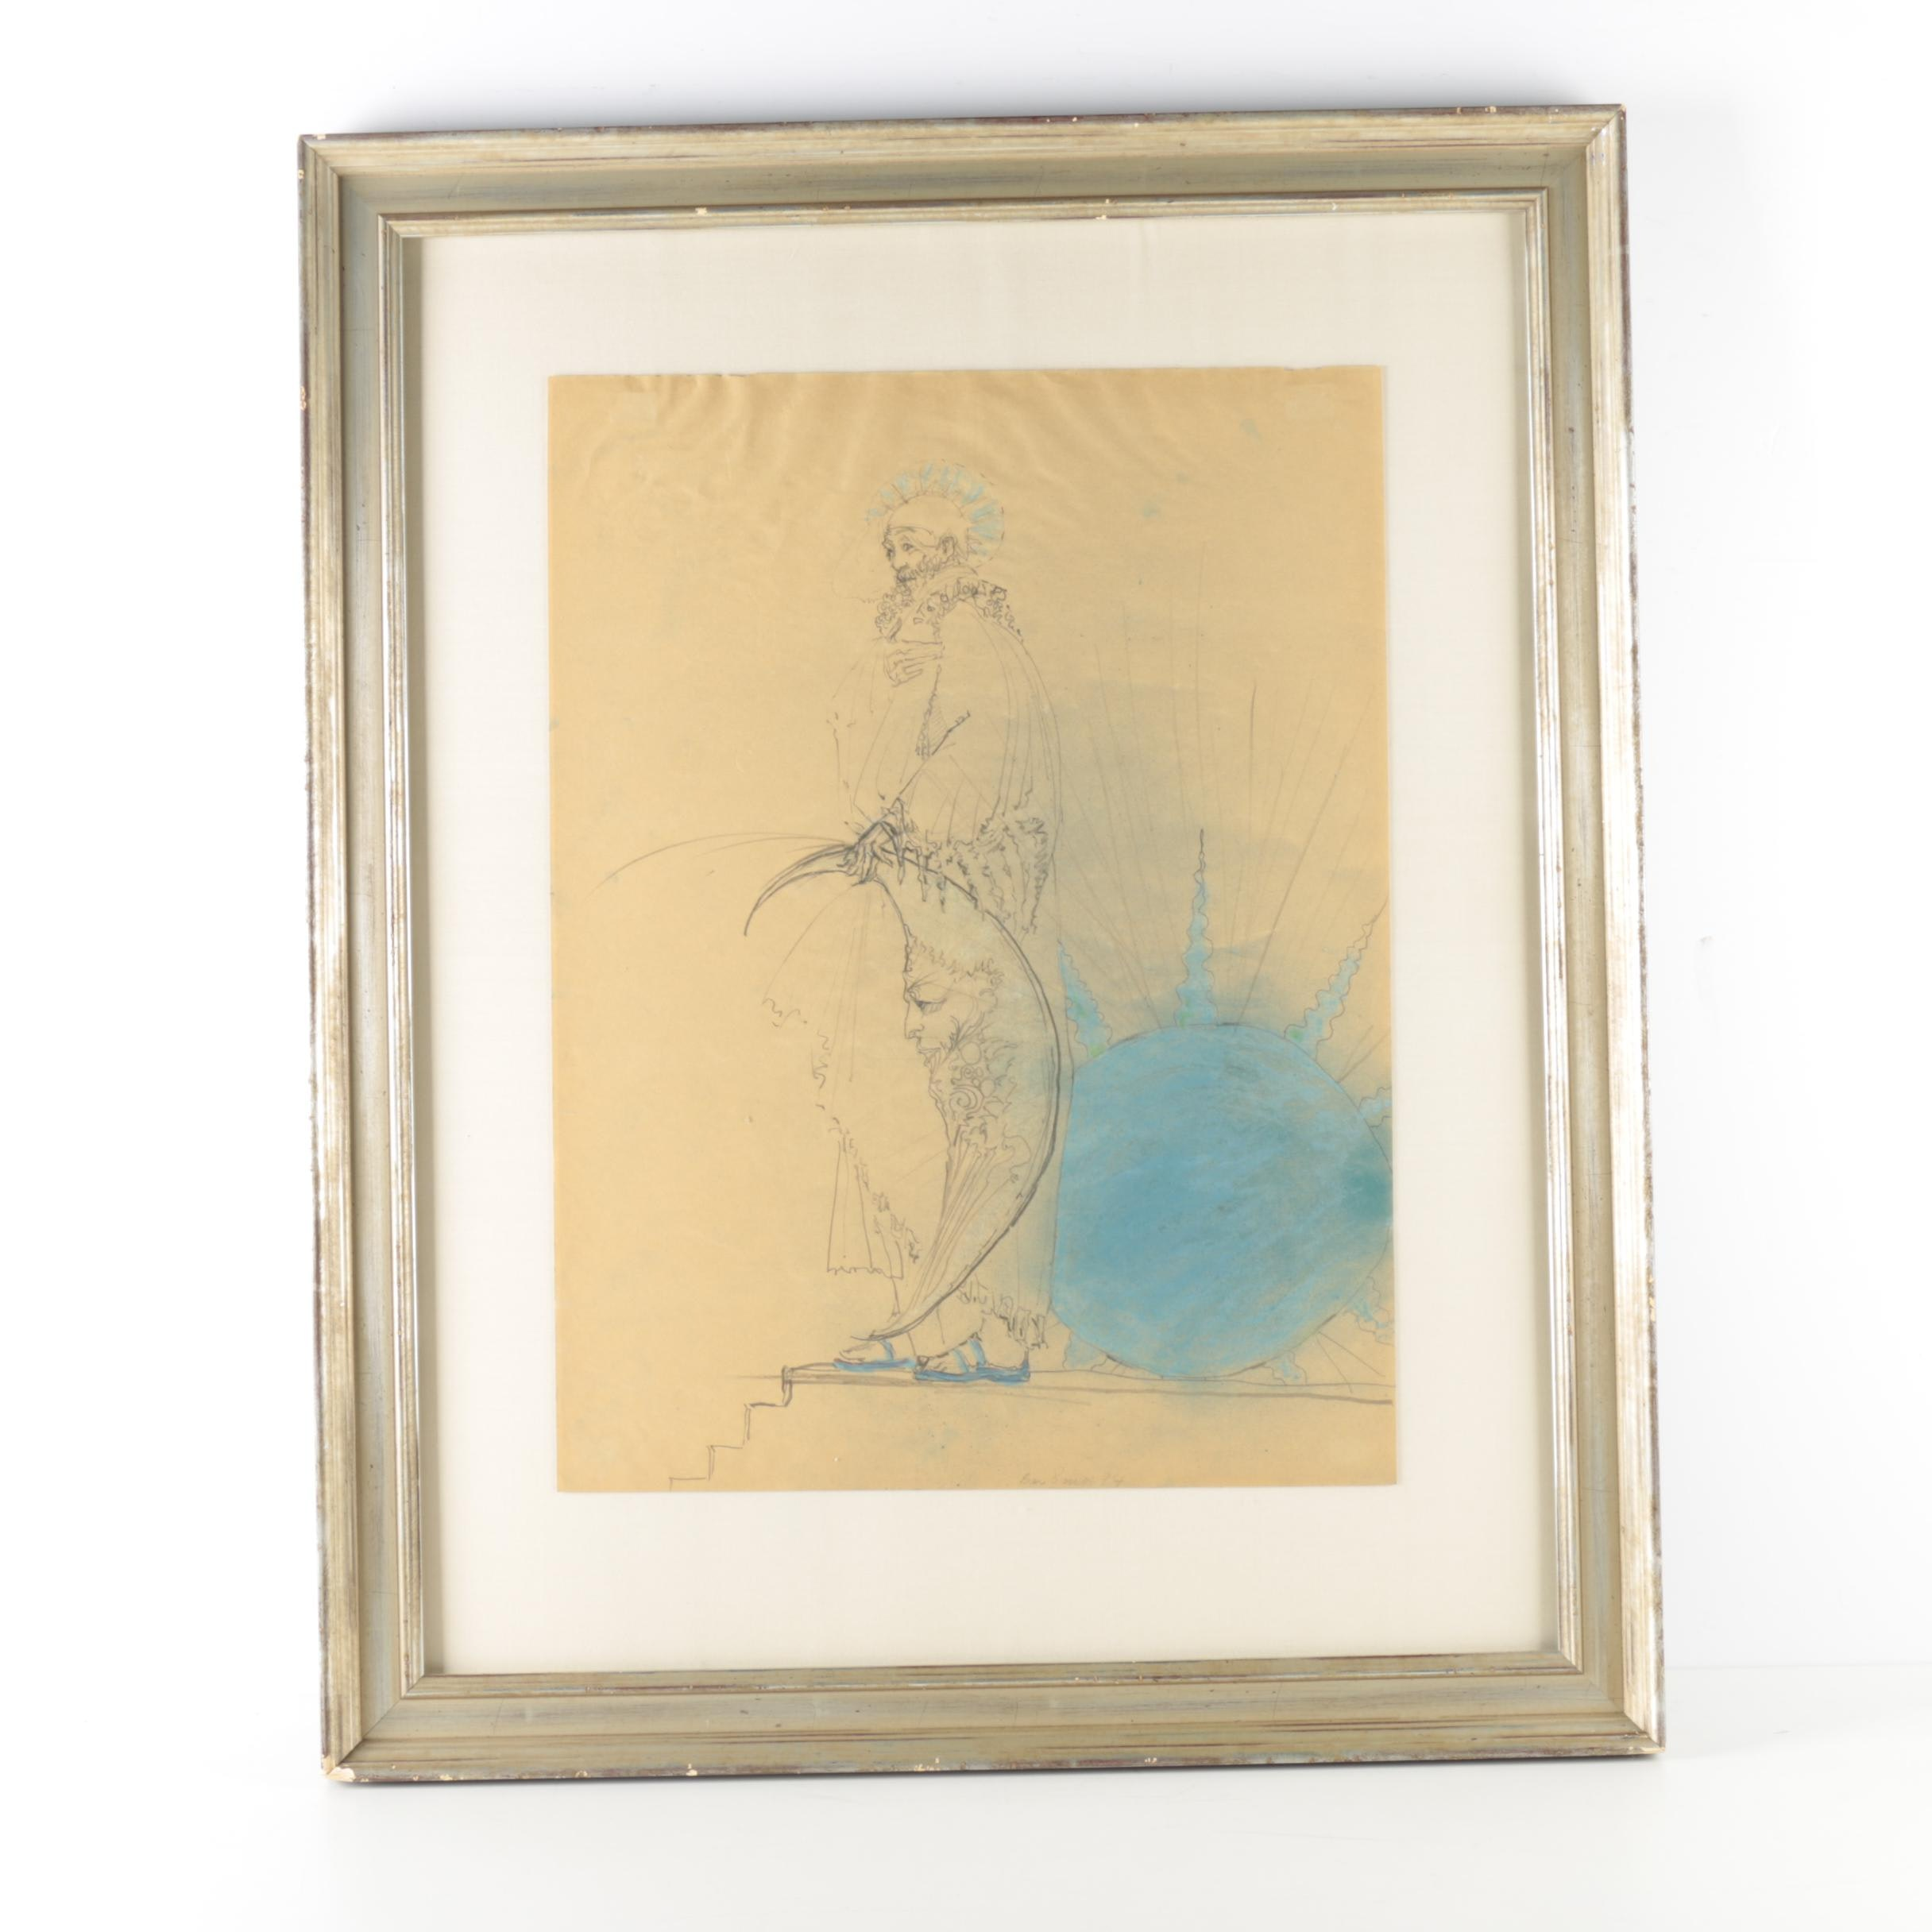 Ben Smith Original Graphite and Pastel Drawing of a Sorcerer